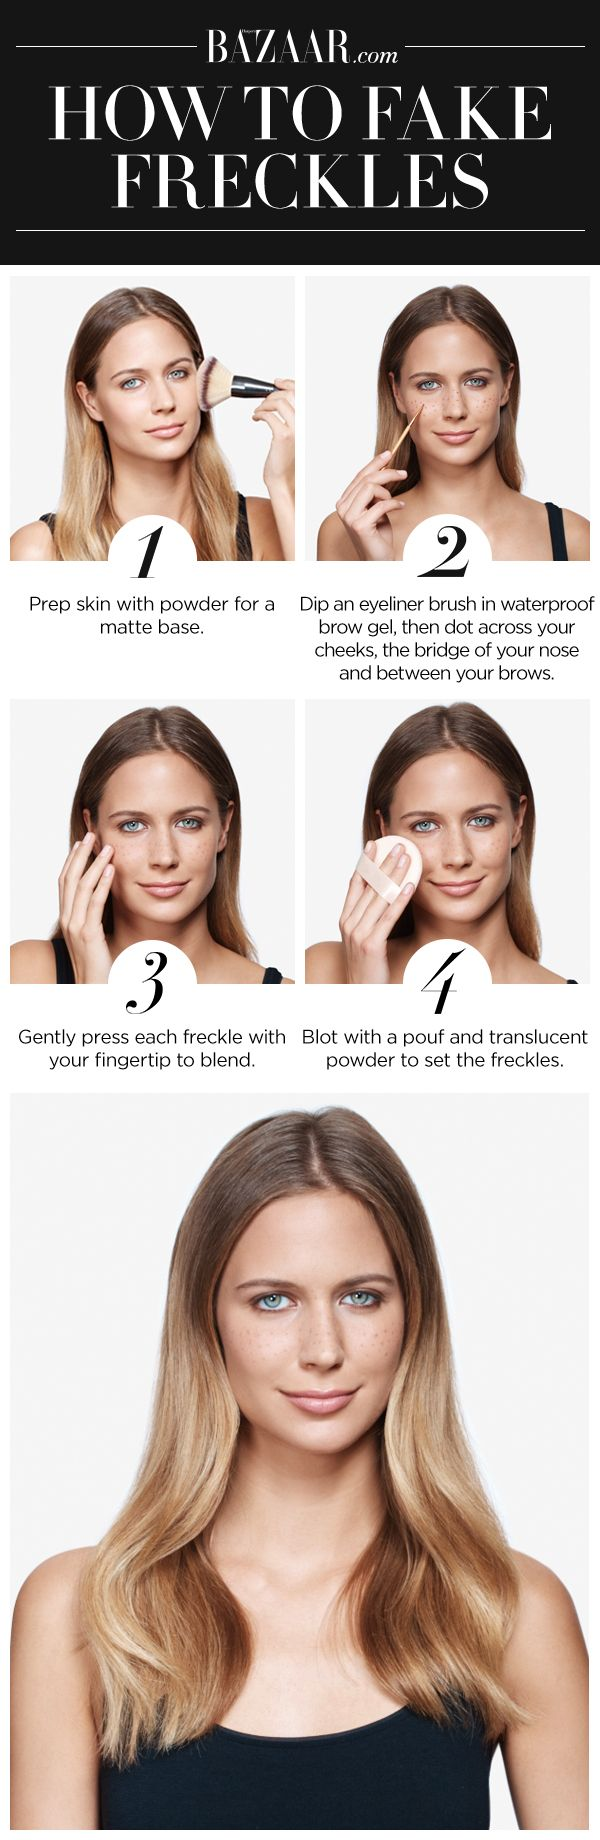 Summer Beauty 101: the step-by-step guide for how to fake freckles.